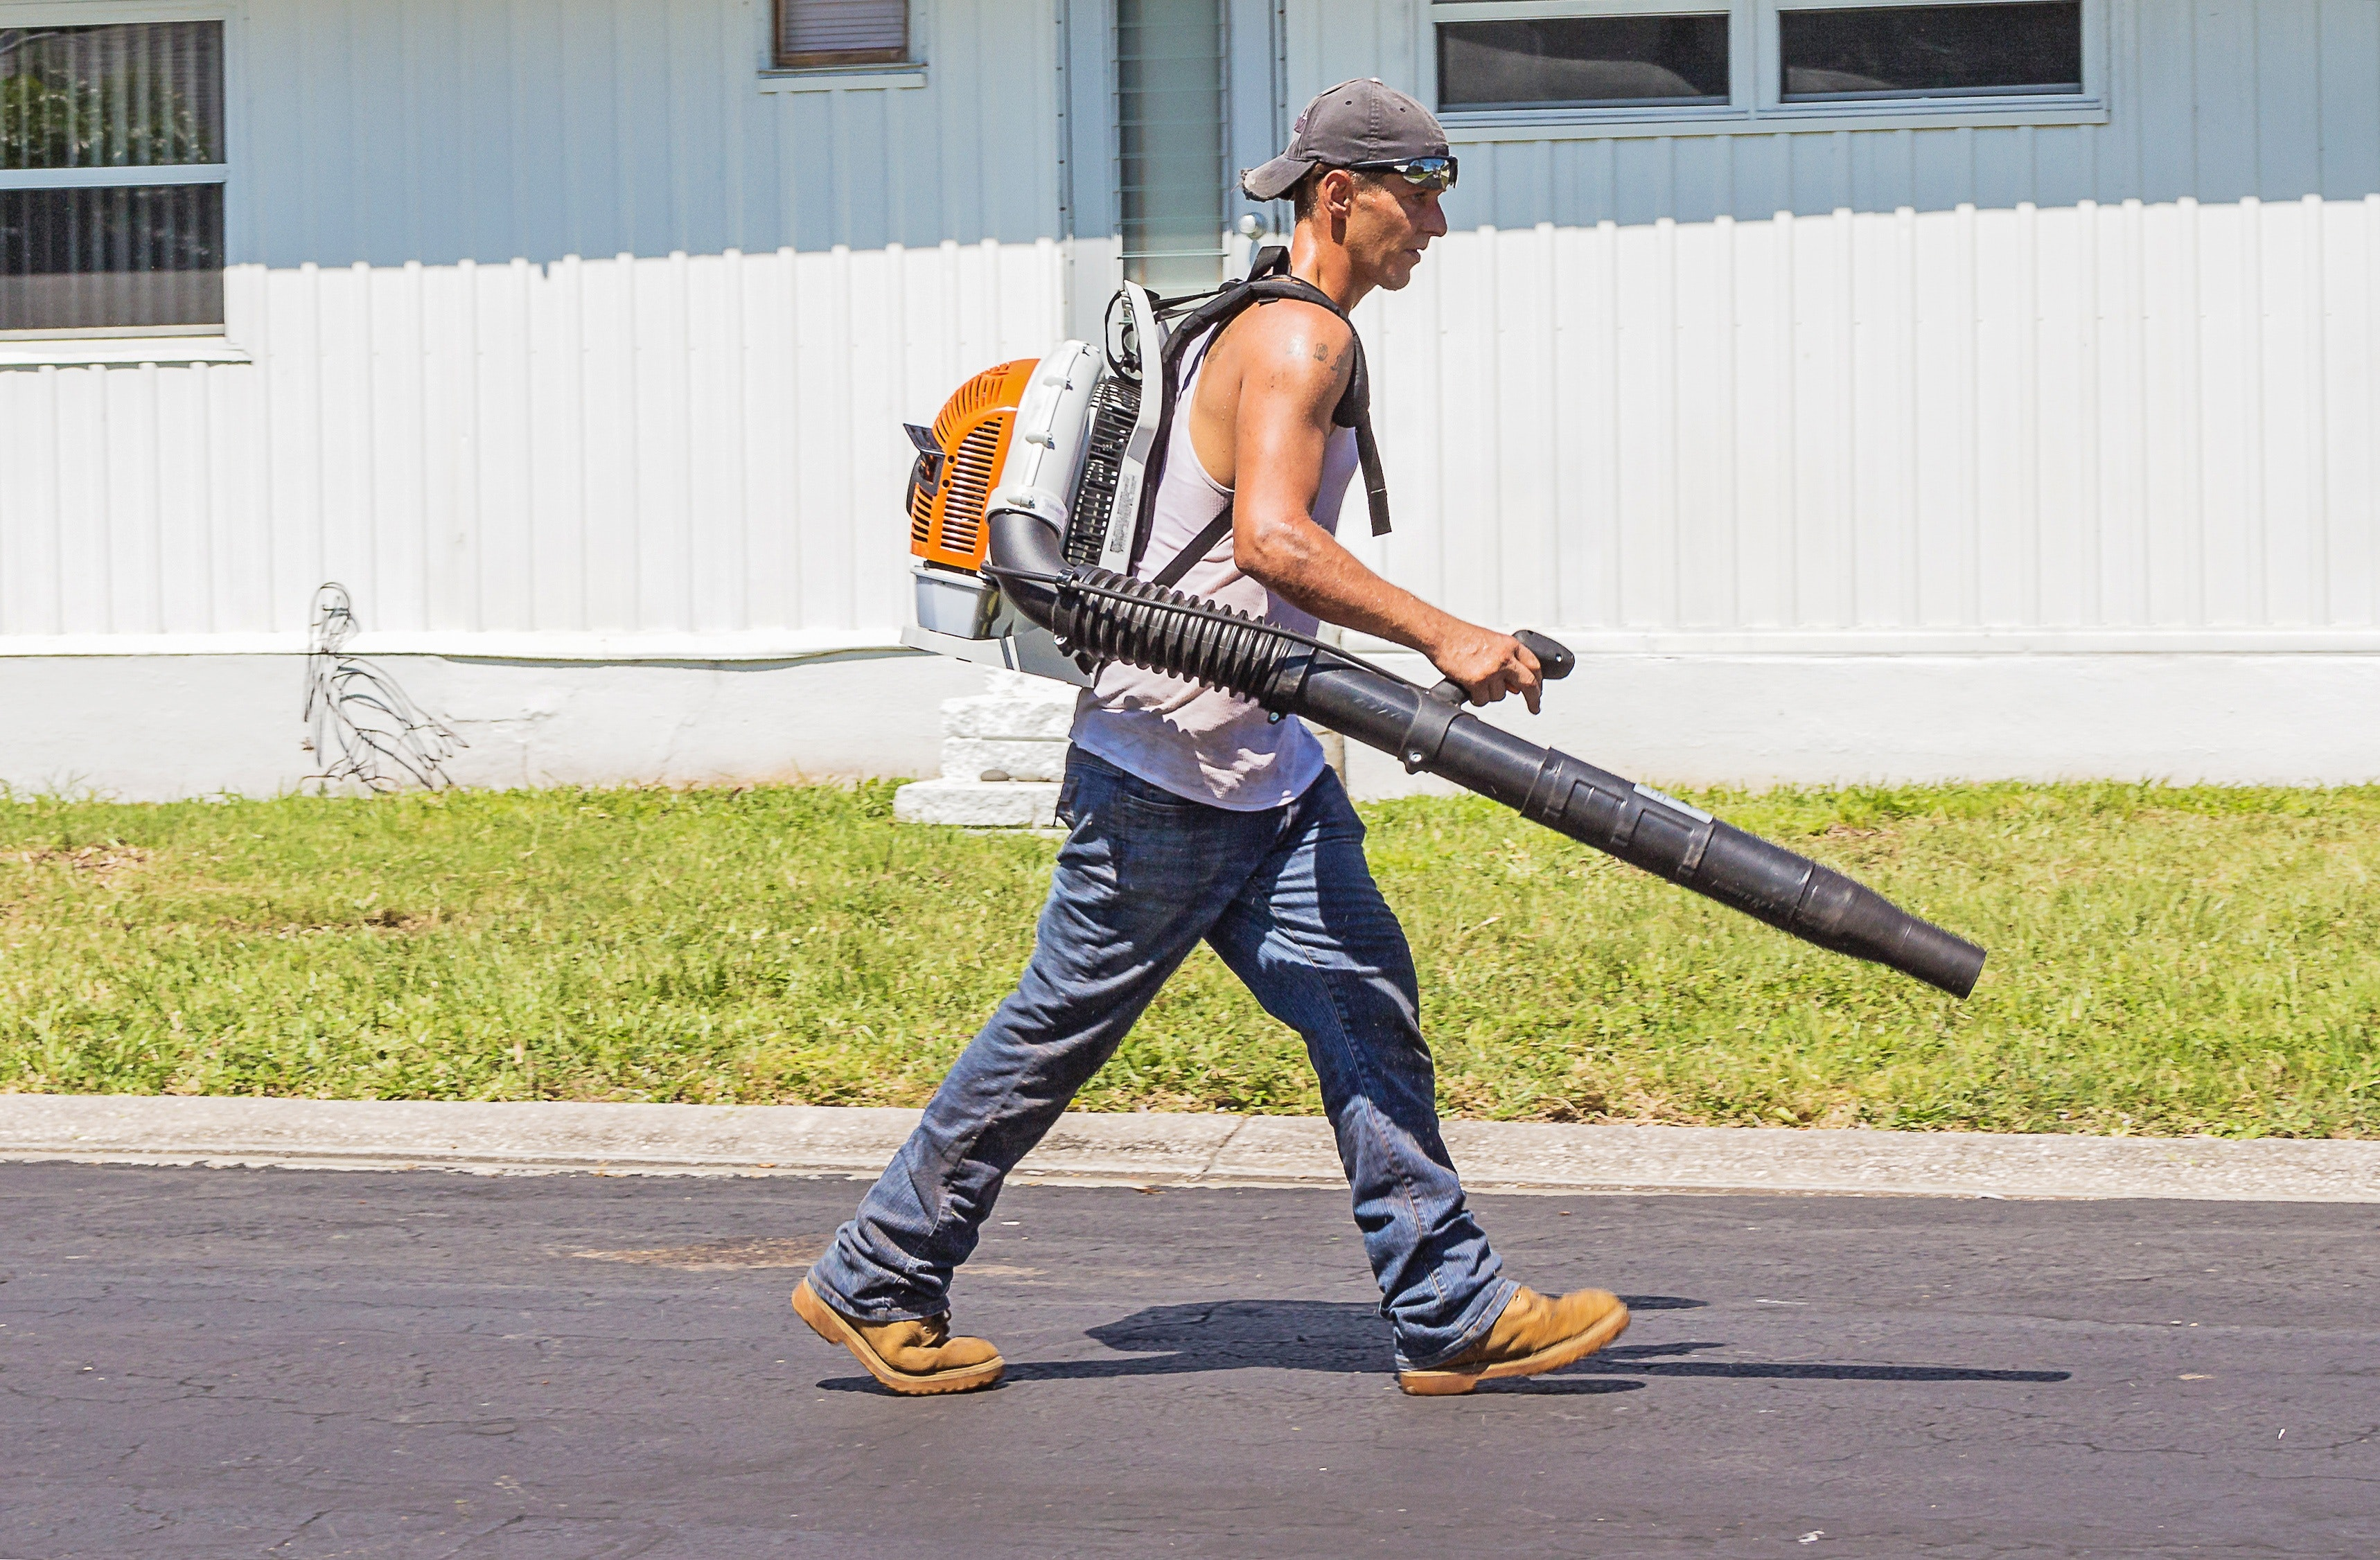 An in-depth review of the best leaf blowers available in 2019.